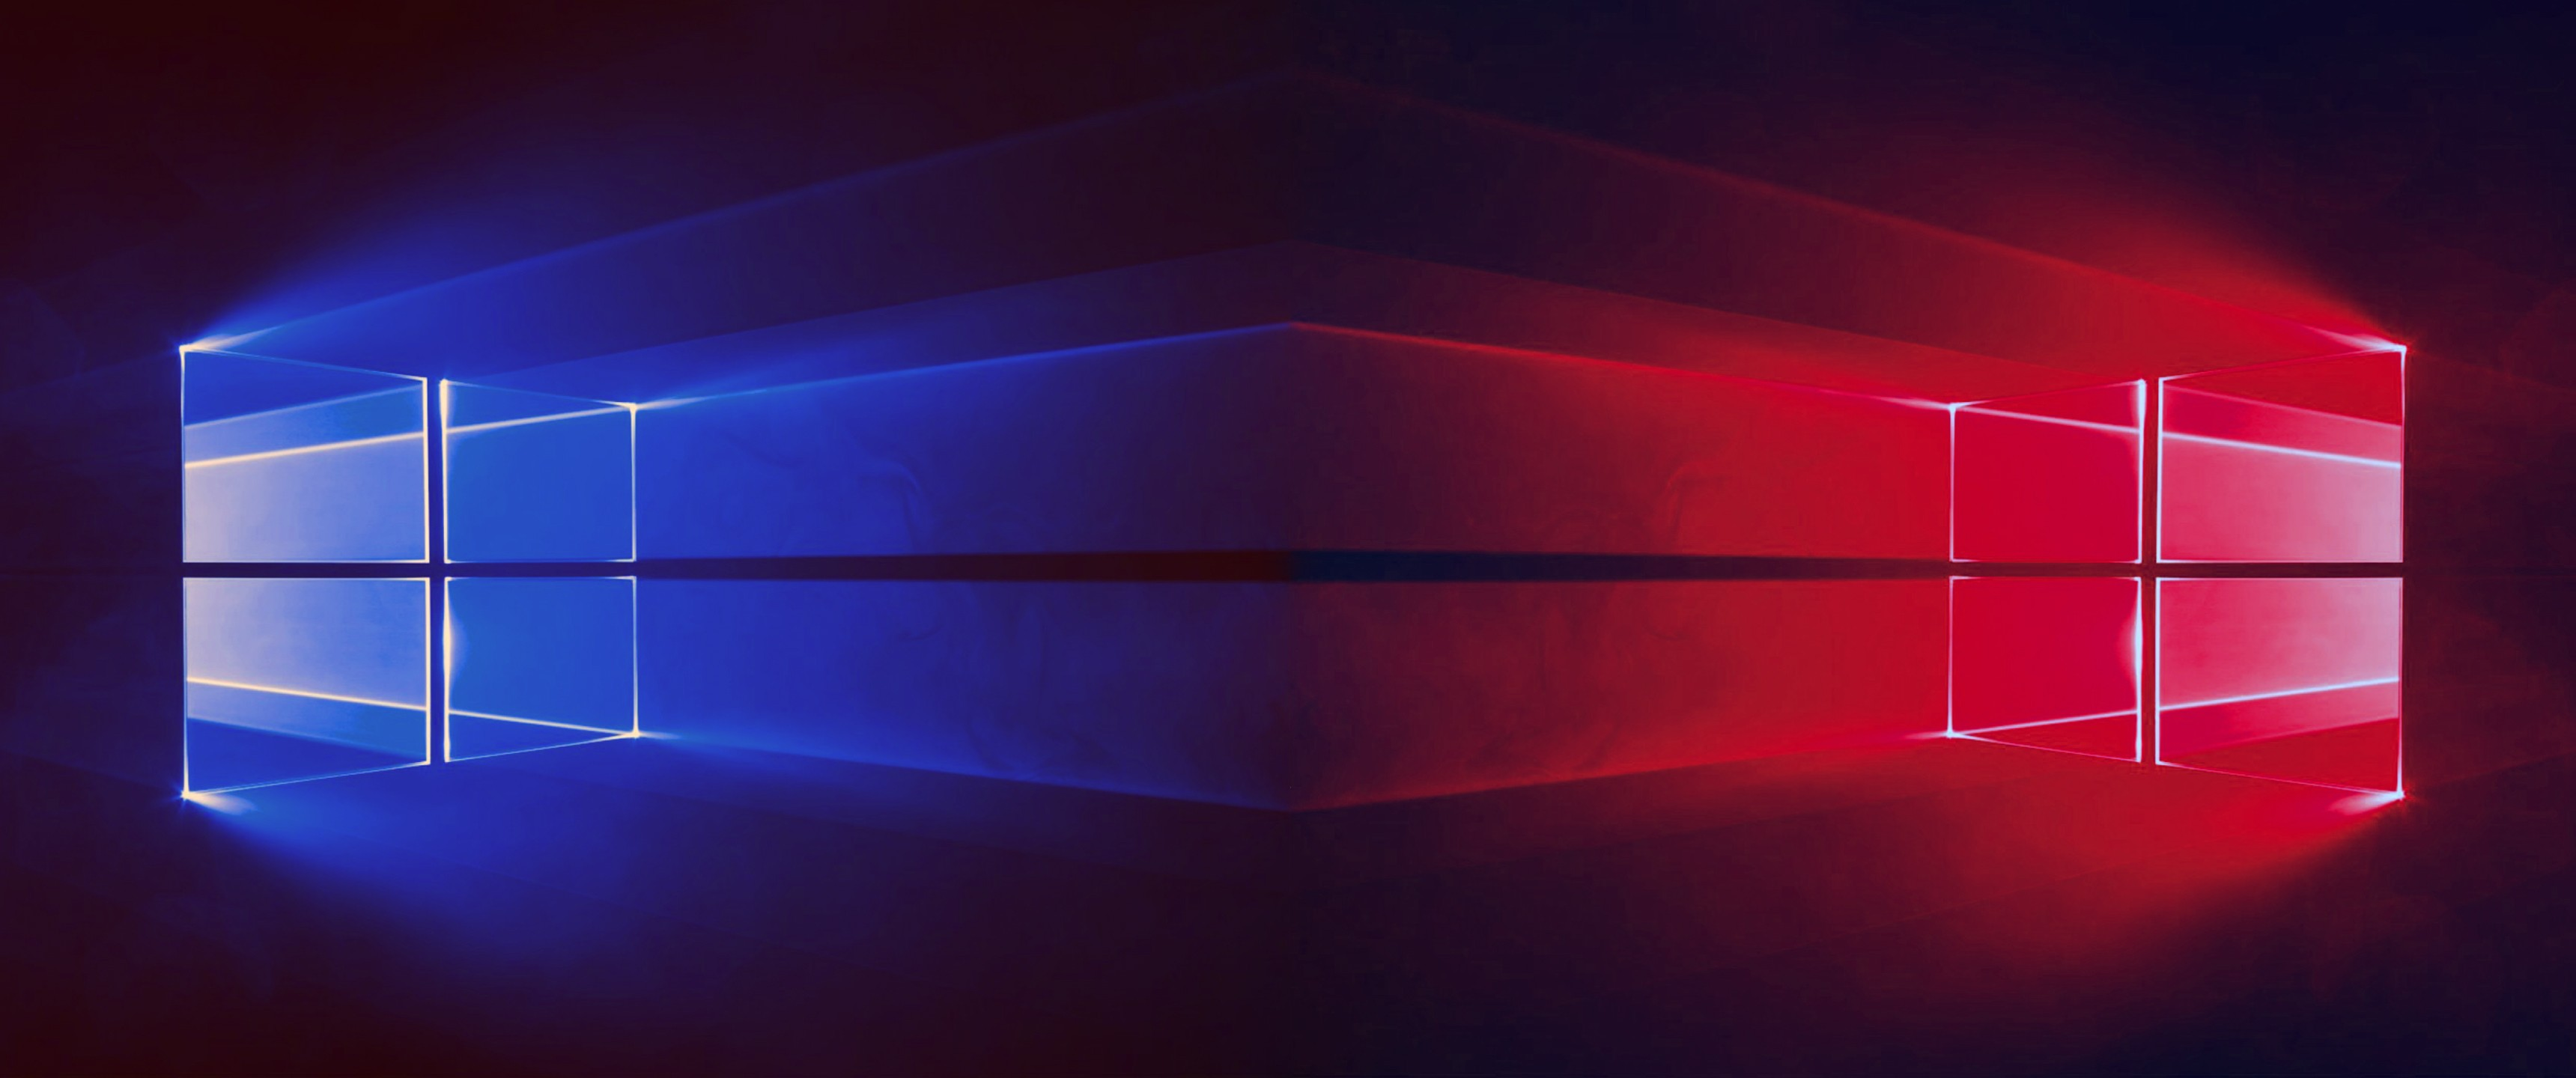 Windows 10 background pictures ·① Download free beautiful ...